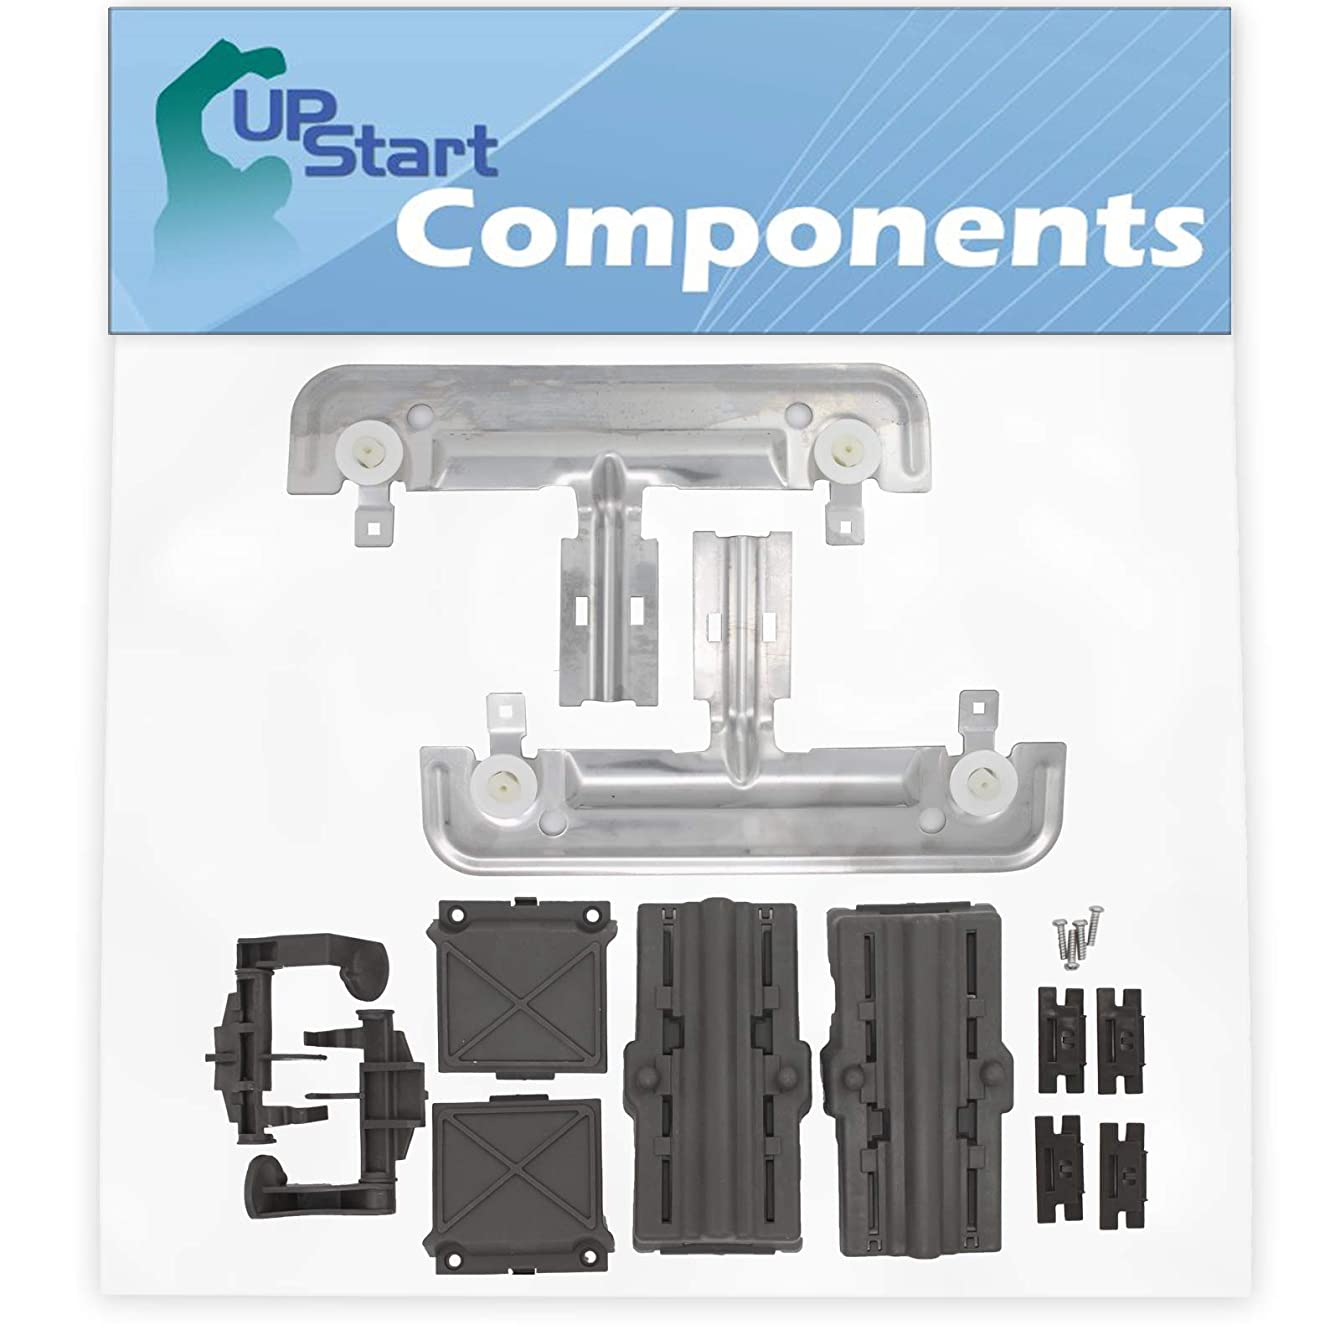 W10712395 Dishwasher Adjuster Replacement Kit Replacement for Whirlpool WDT750SAHZ0 Dishwasher - Compatible with W10712395 Dishwasher Rack Adjuster Kit - UpStart Components Brand